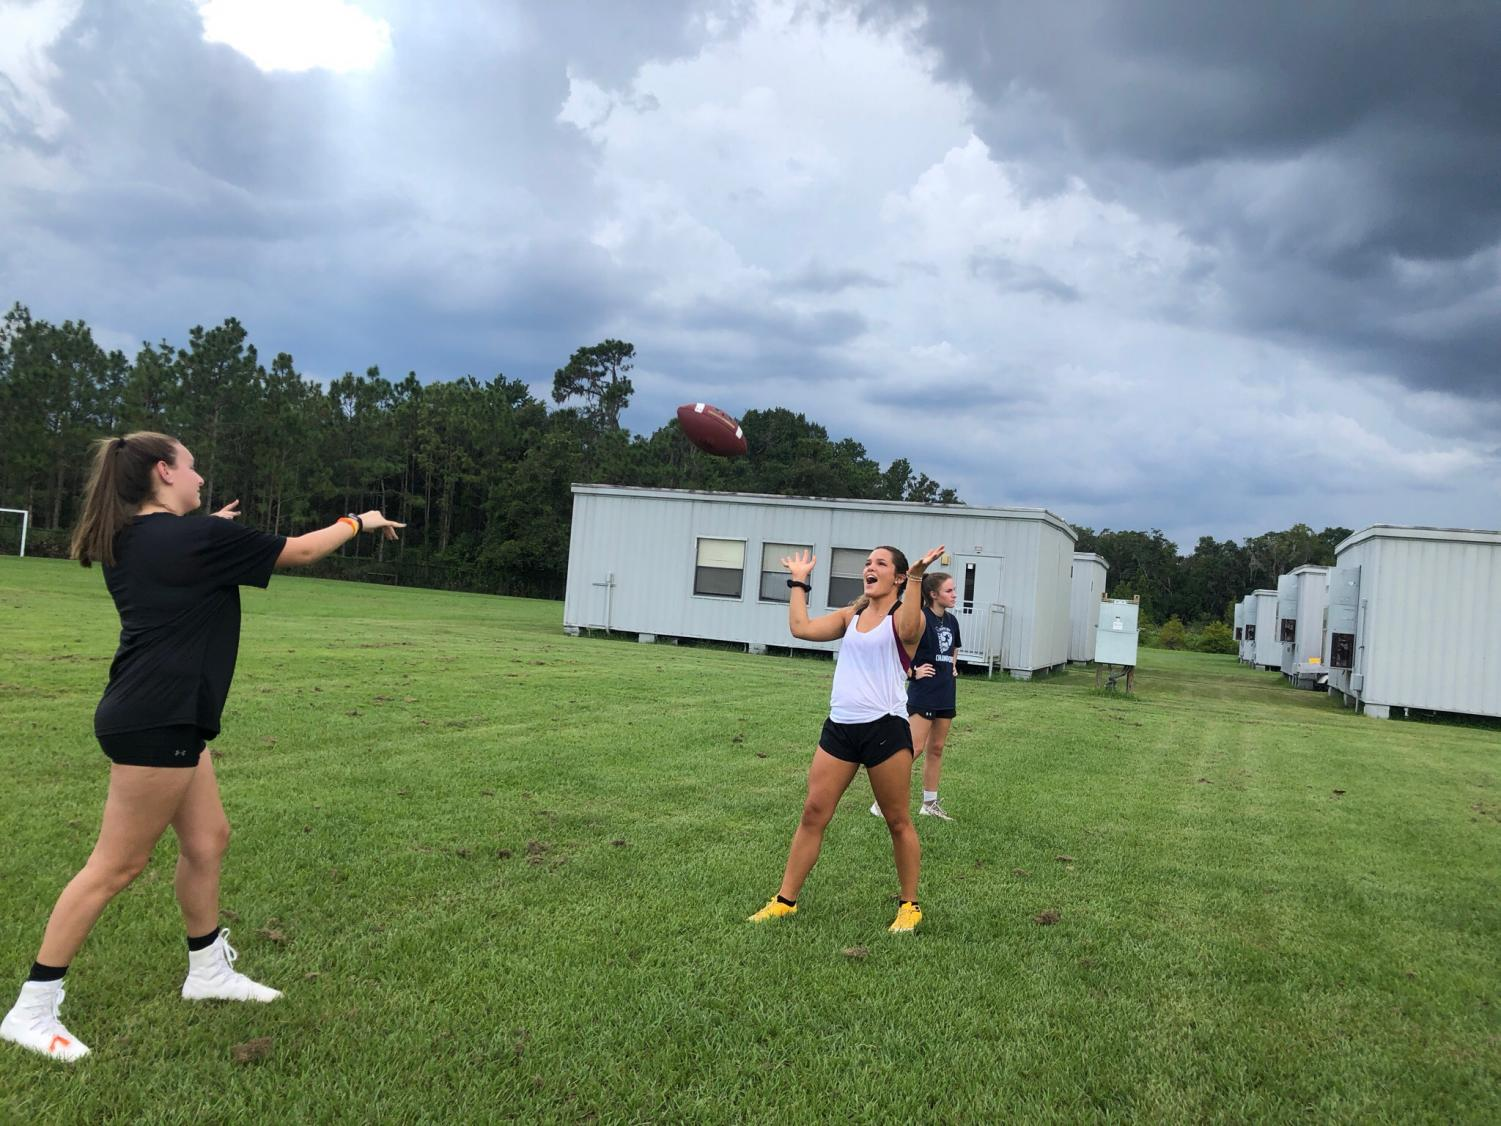 Seniors Jordyn Beer and Emily Beazley warming up their throws at practice Tuesday.